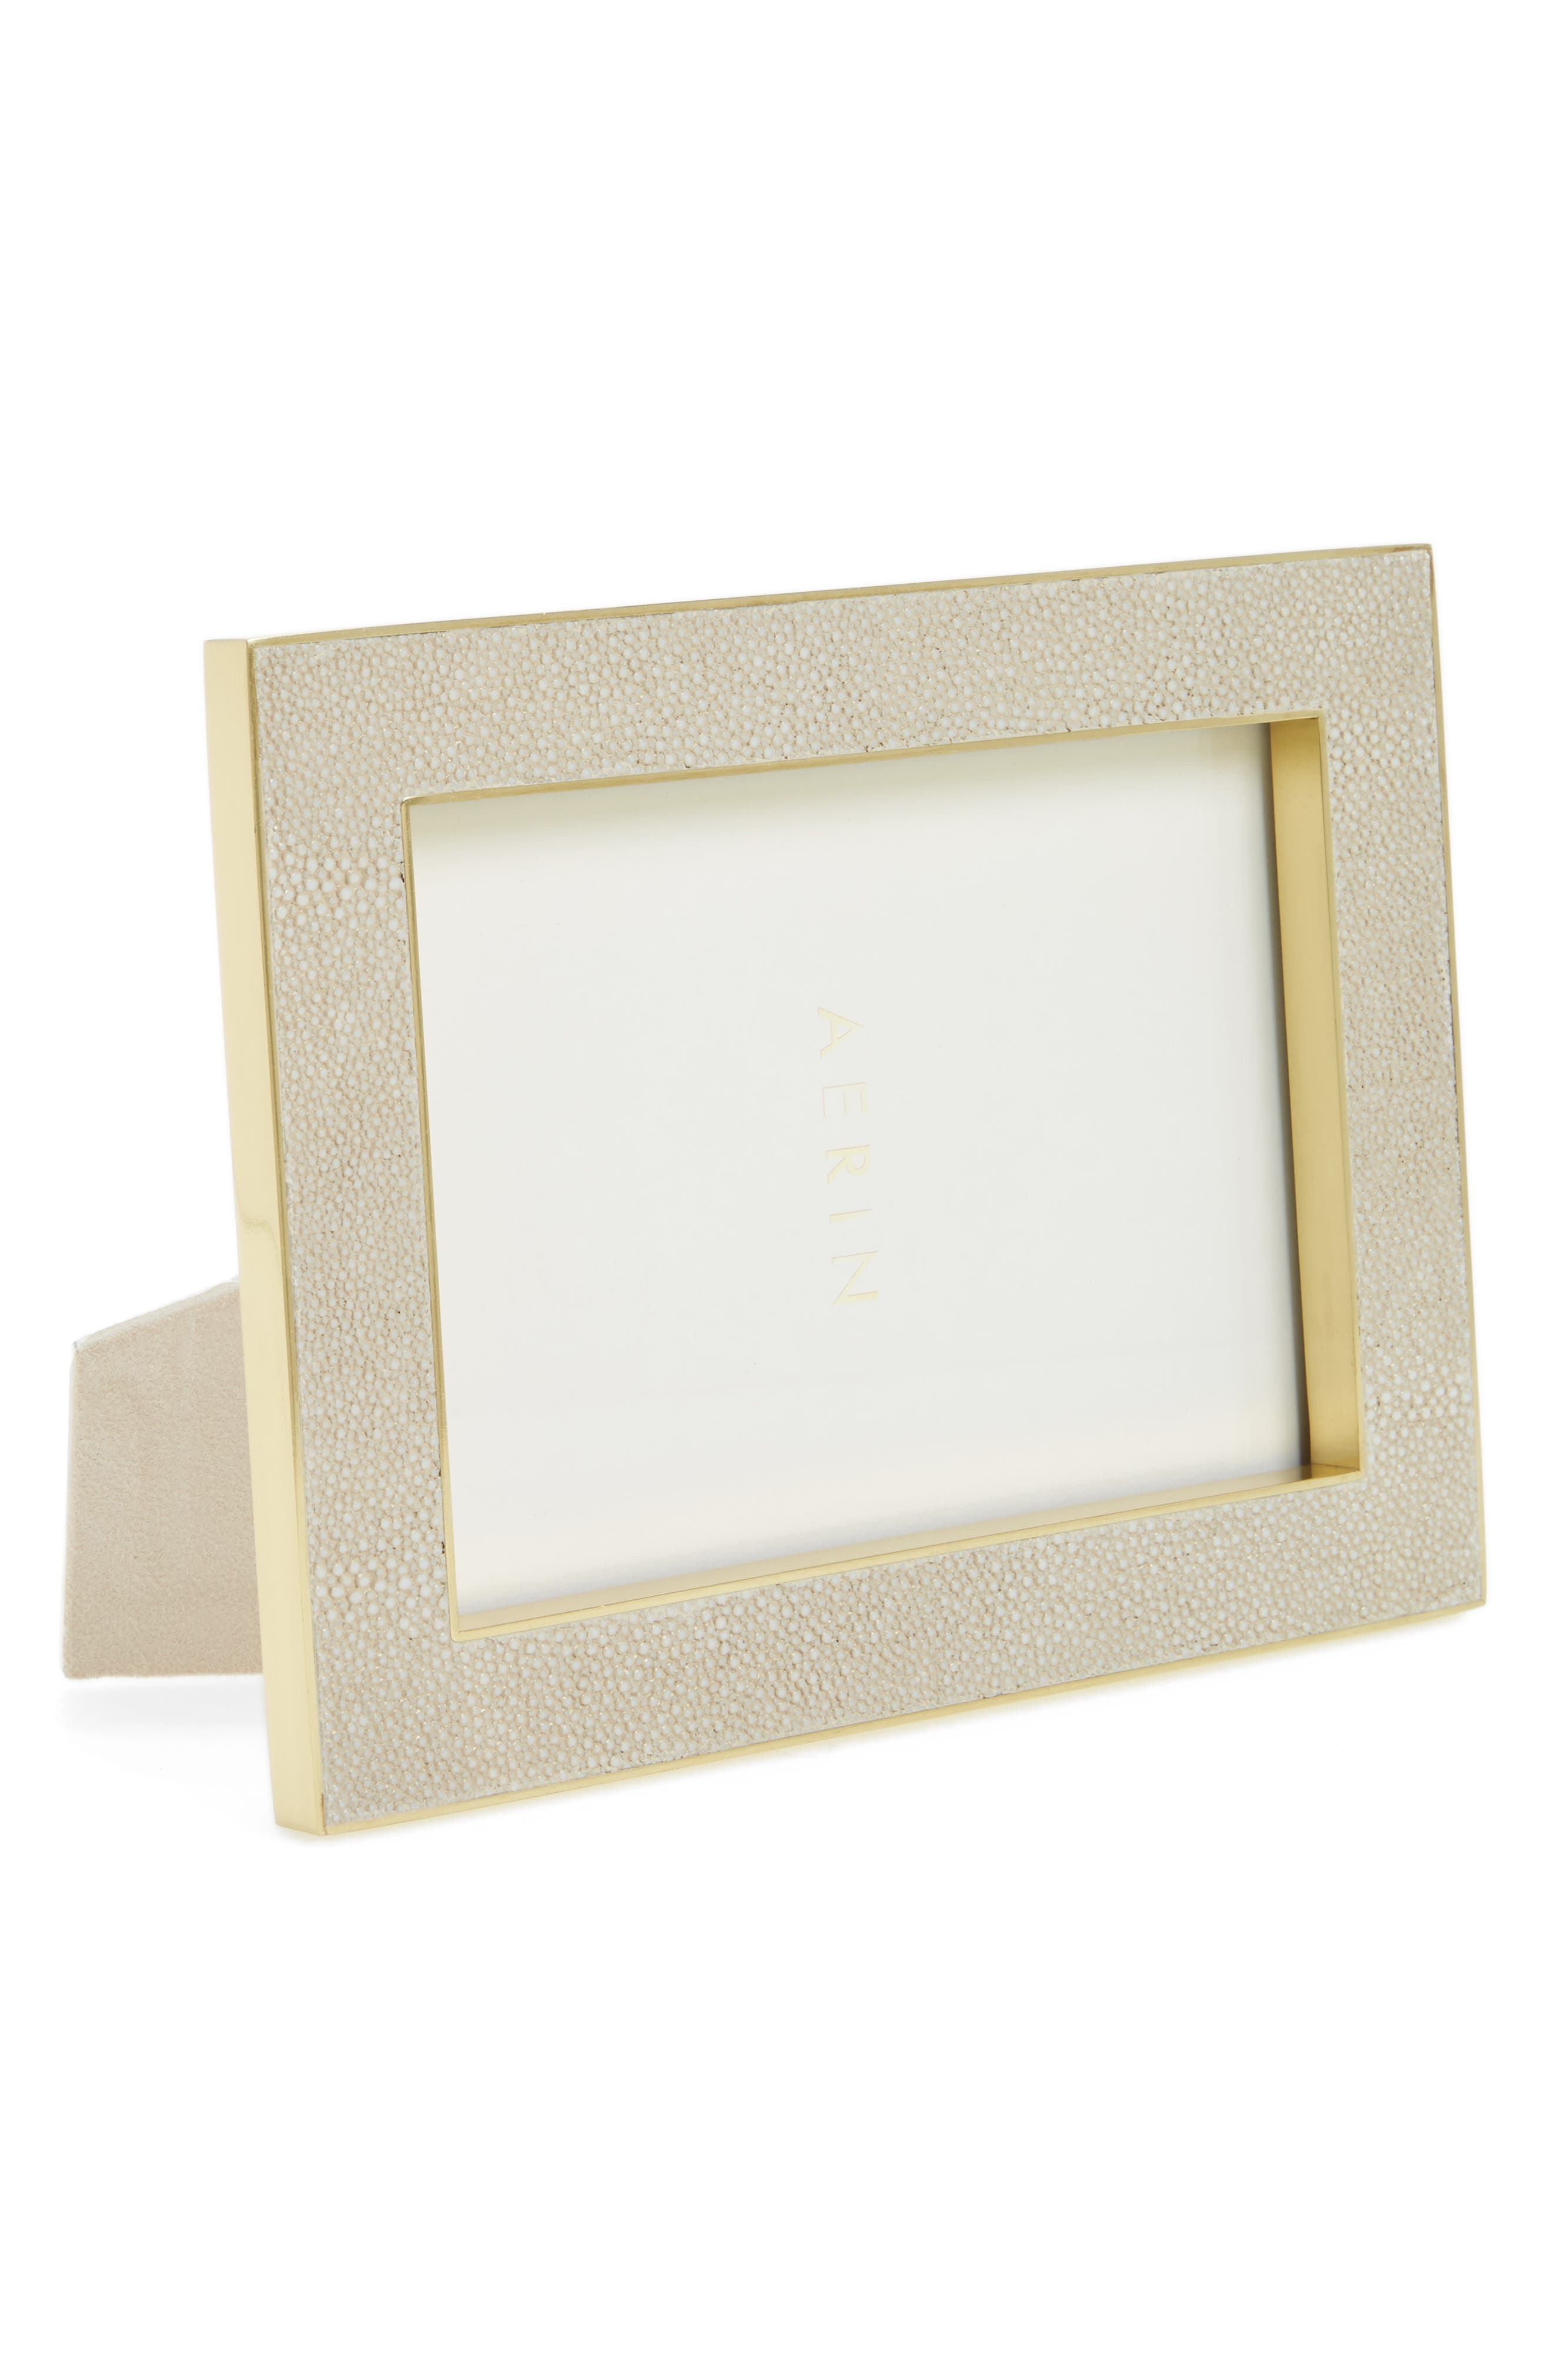 Shagreen Picture Frame,                             Main thumbnail 1, color,                             250